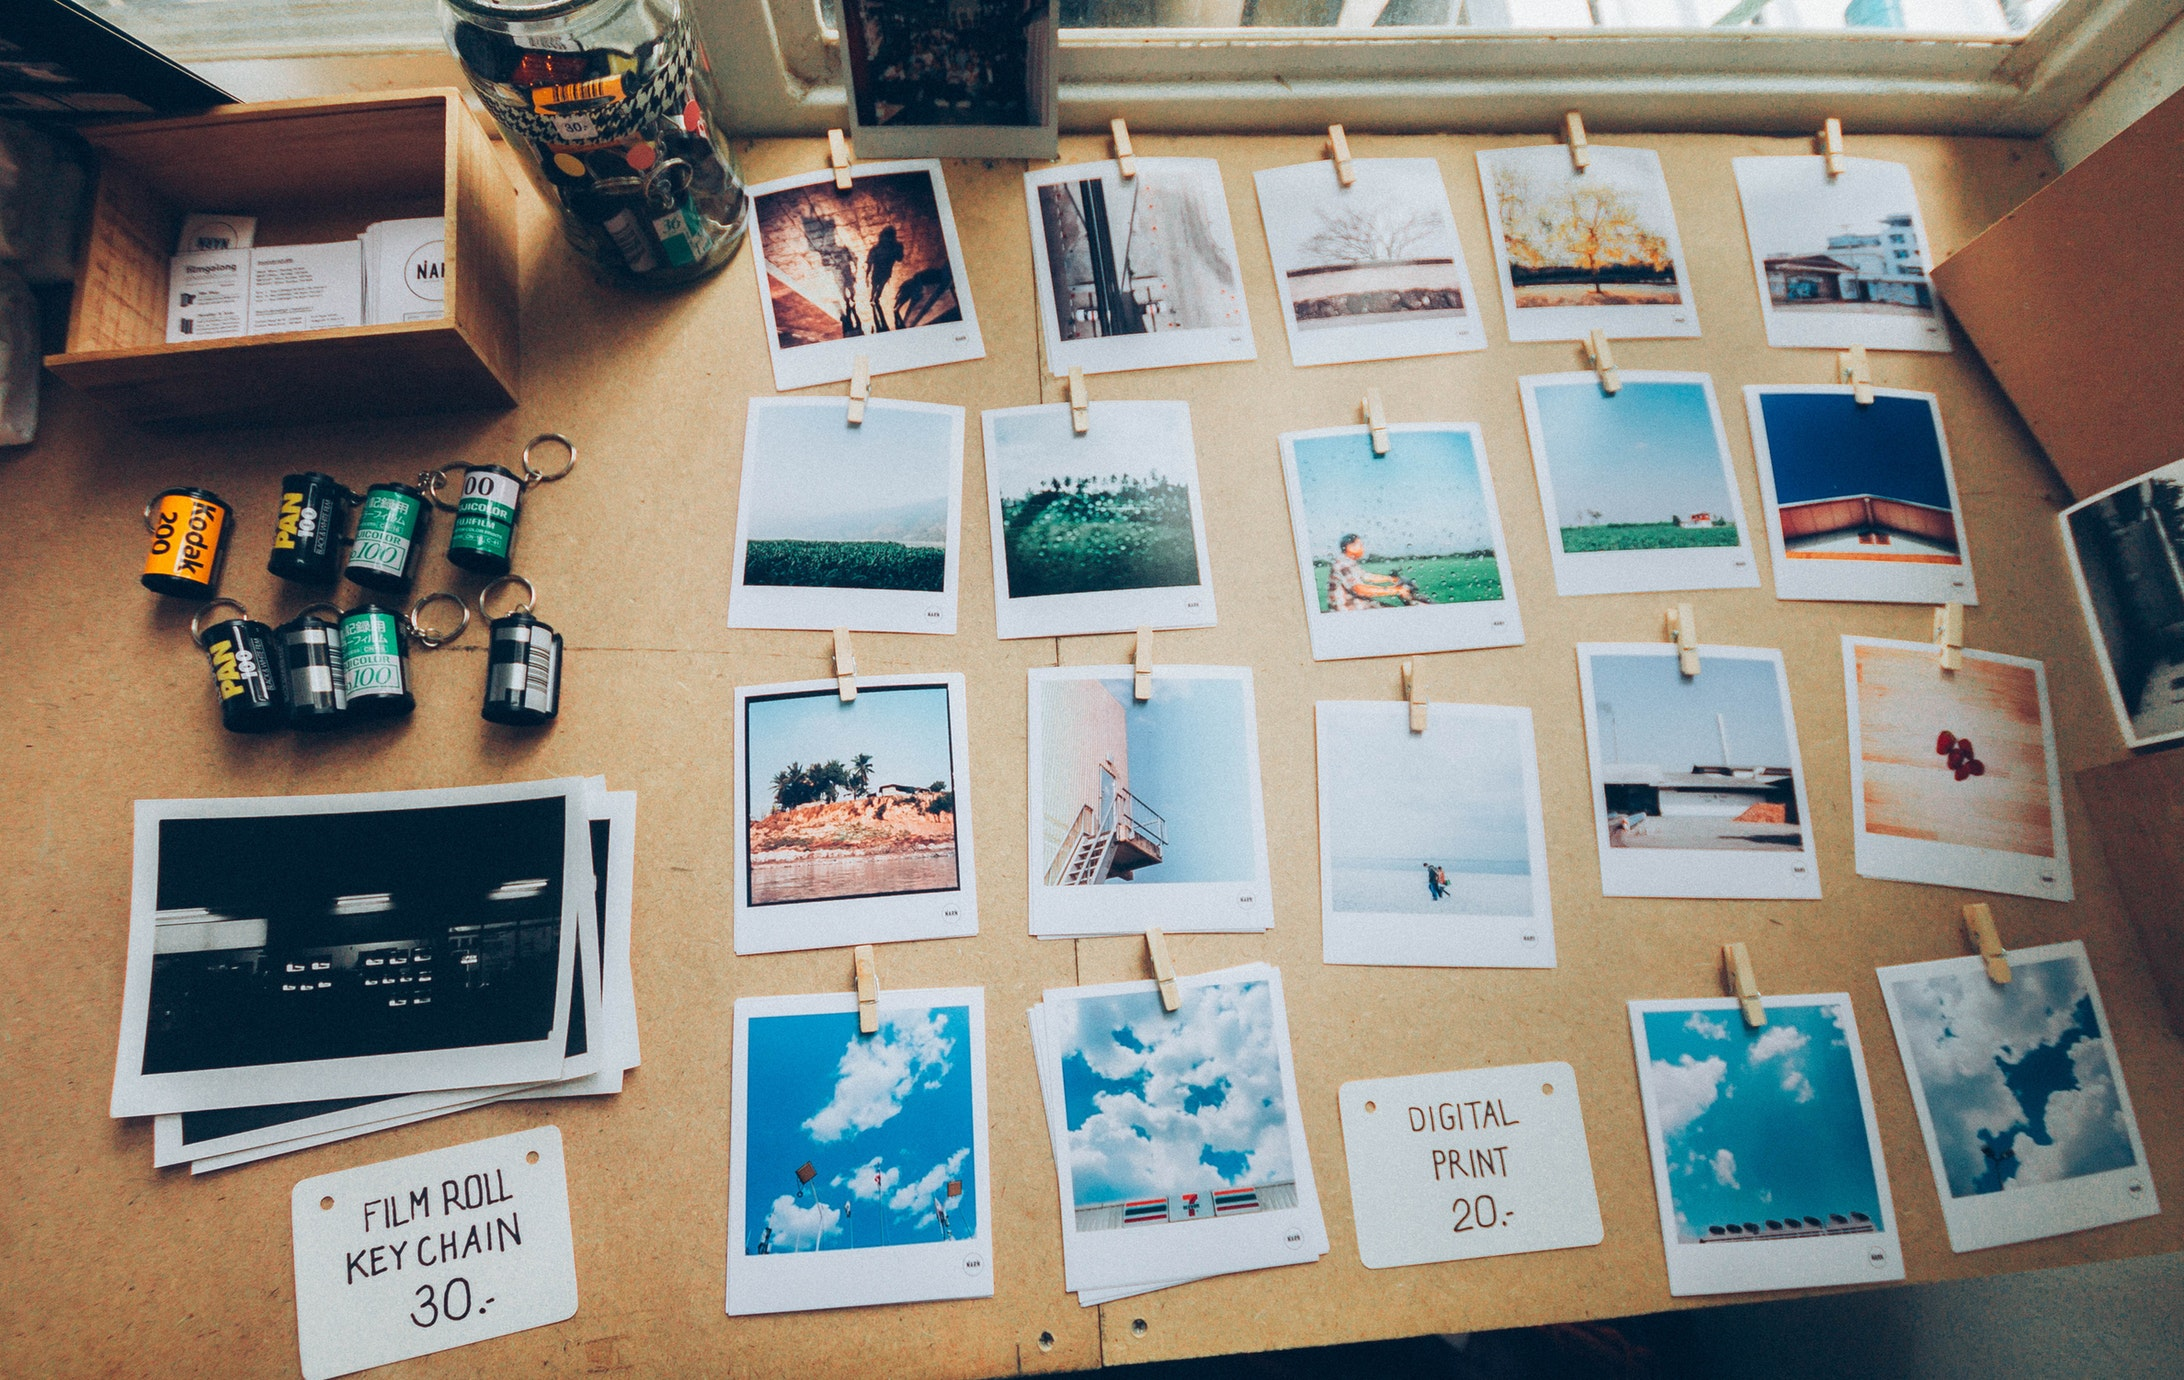 10 Best Printers for Giclee Prints and Archival Prints in